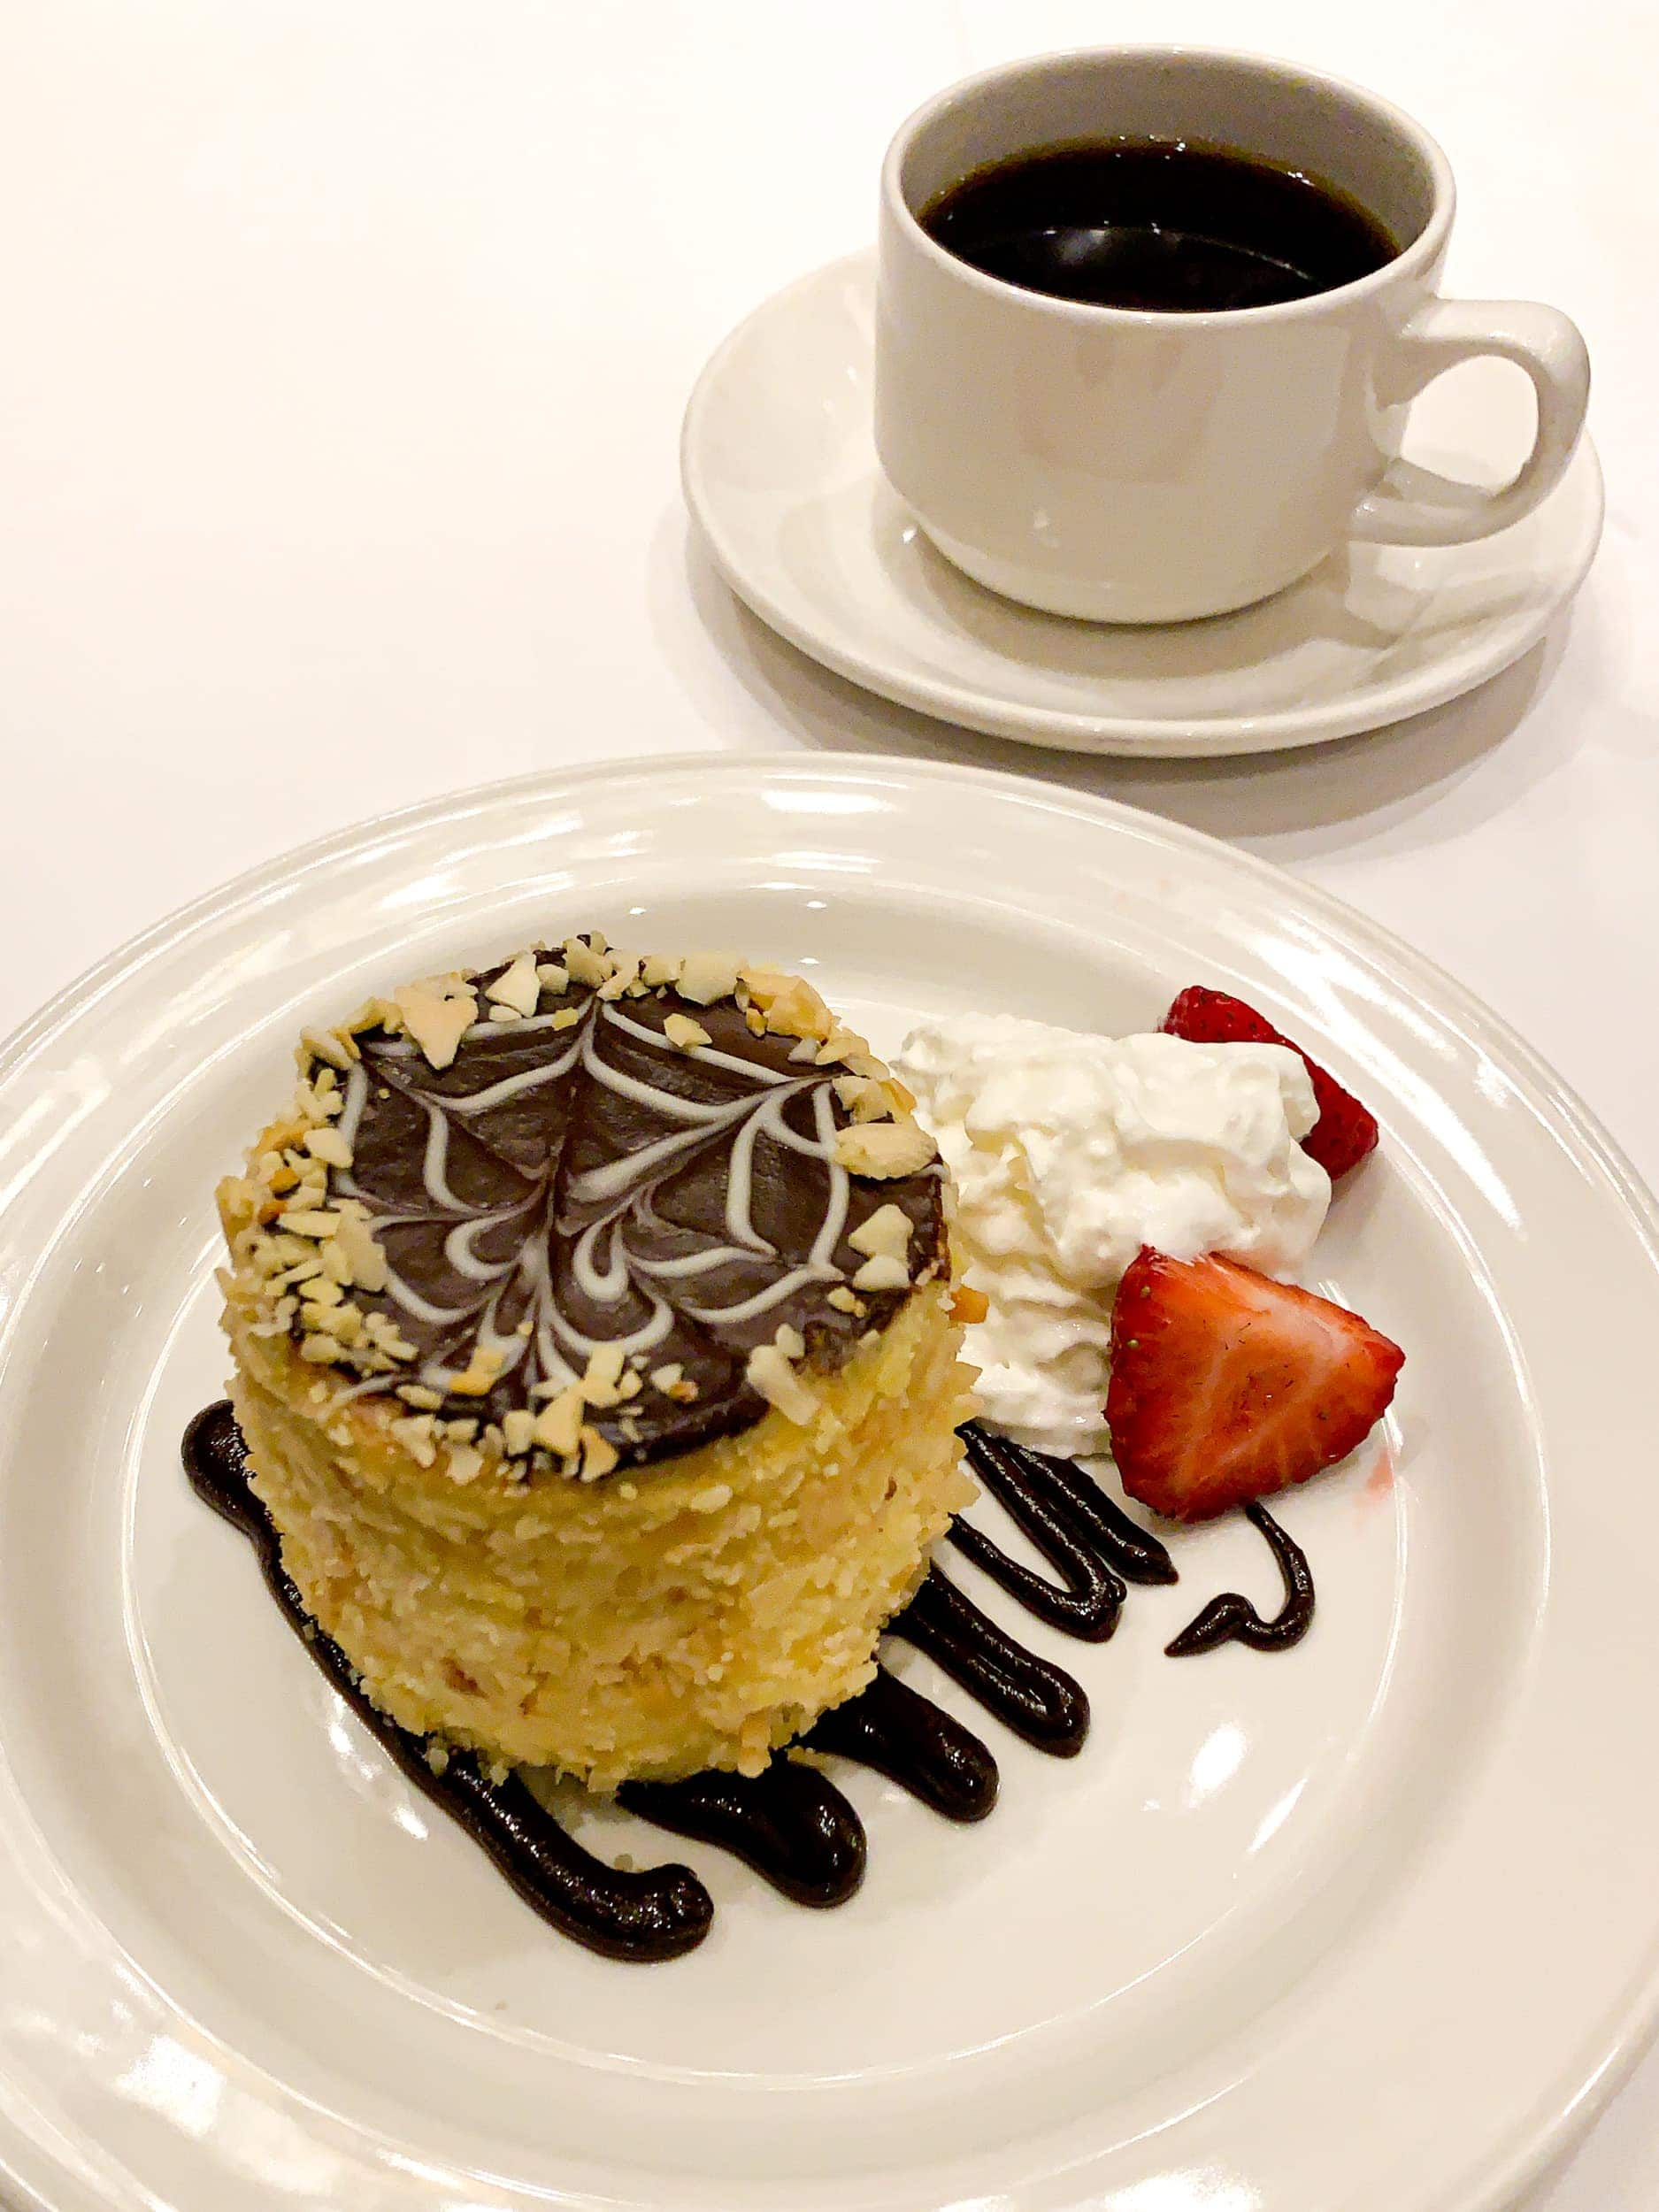 The original Boston Cream Pie is a quintessential Boston food experience